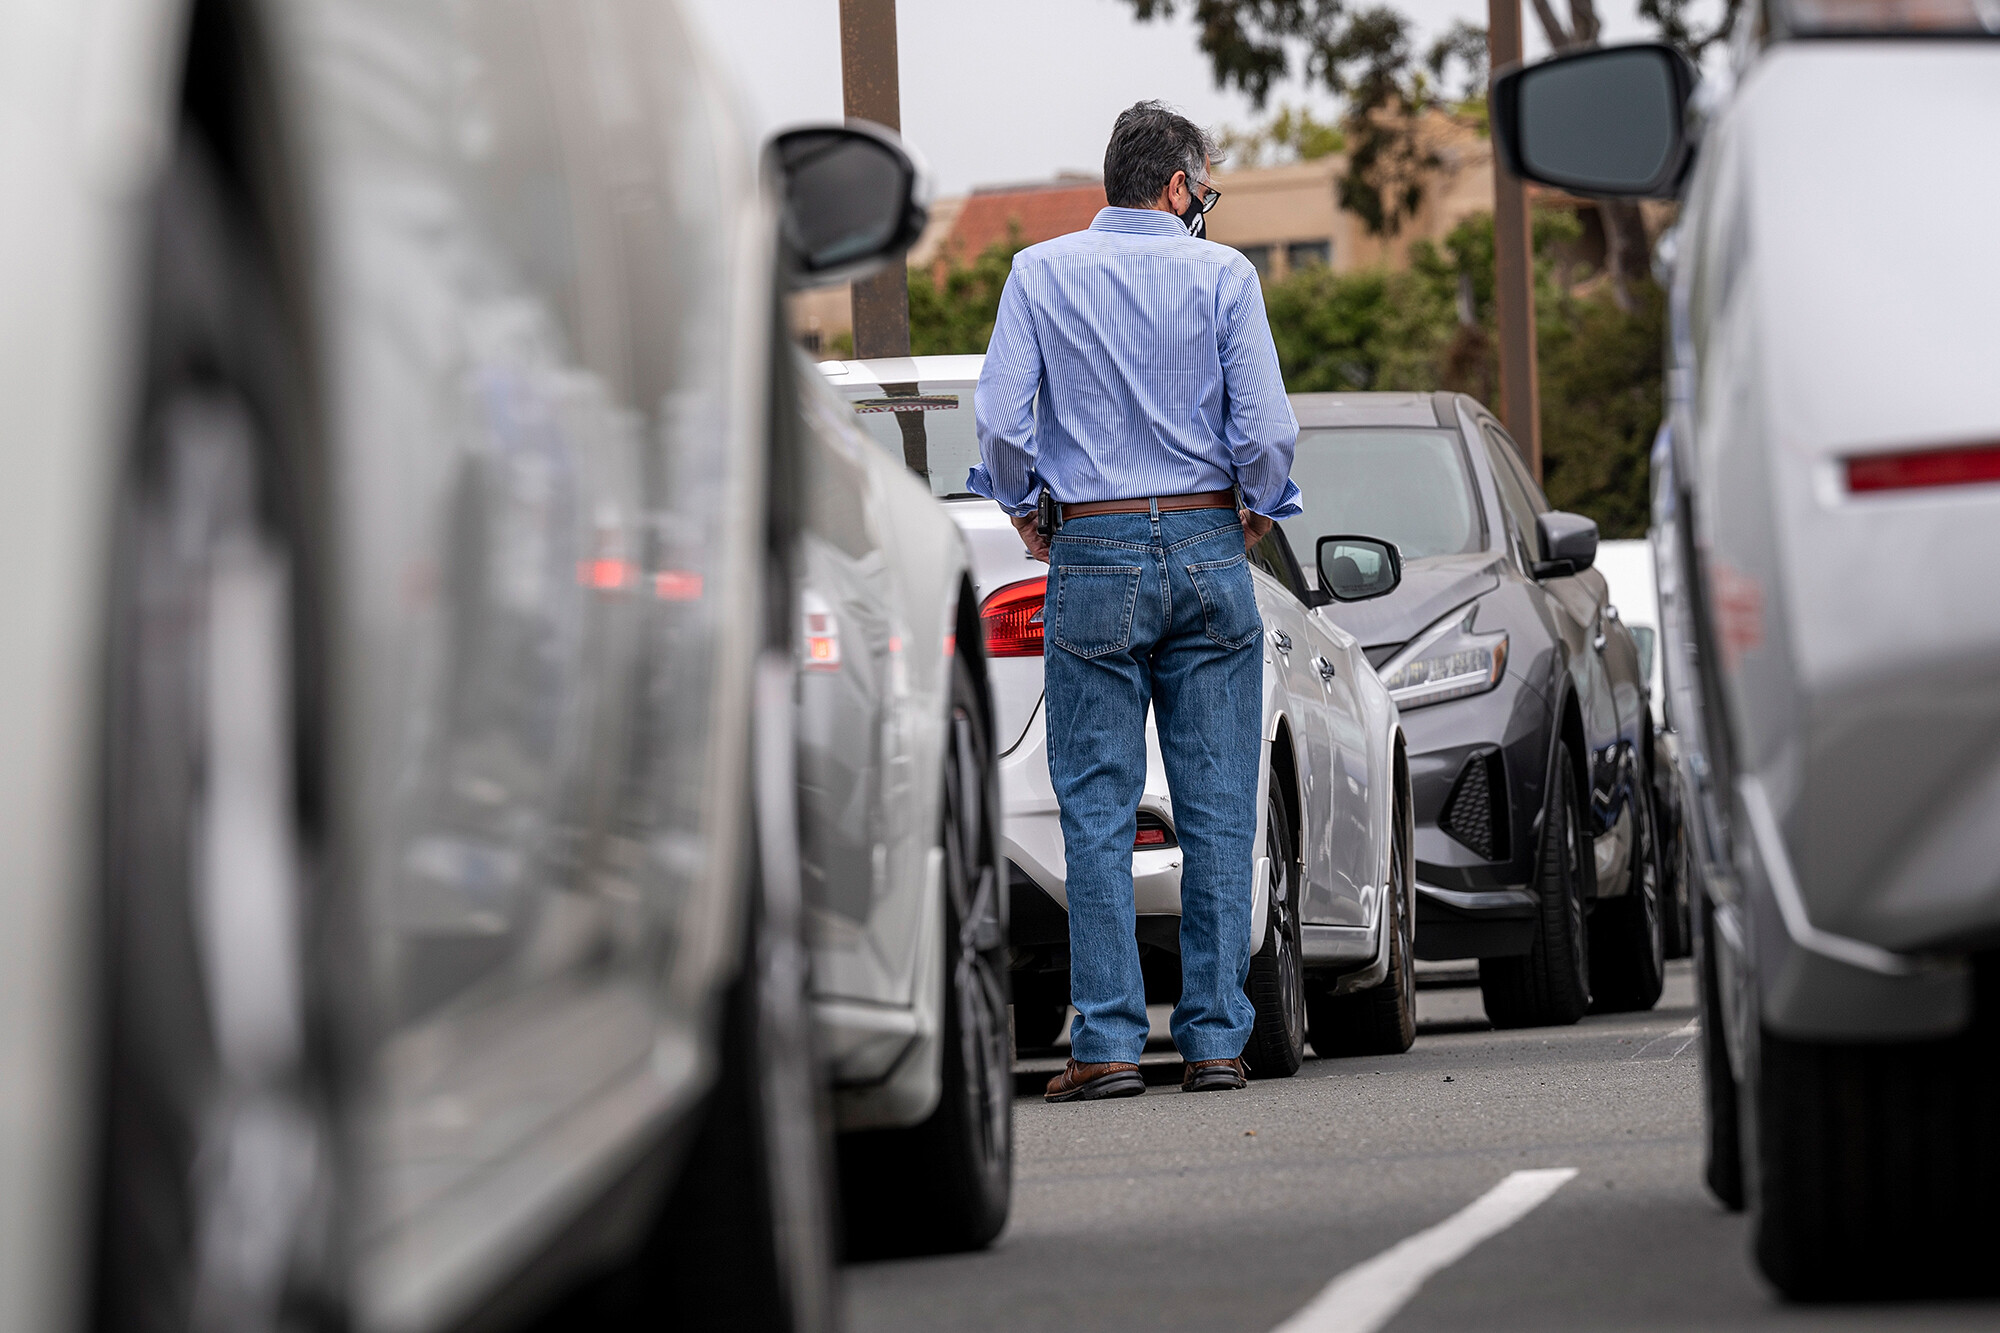 <i>David Paul Morris/Bloomberg/Getty Images</i><br/>A customer shops for vehicles at a car dealership in Richmond